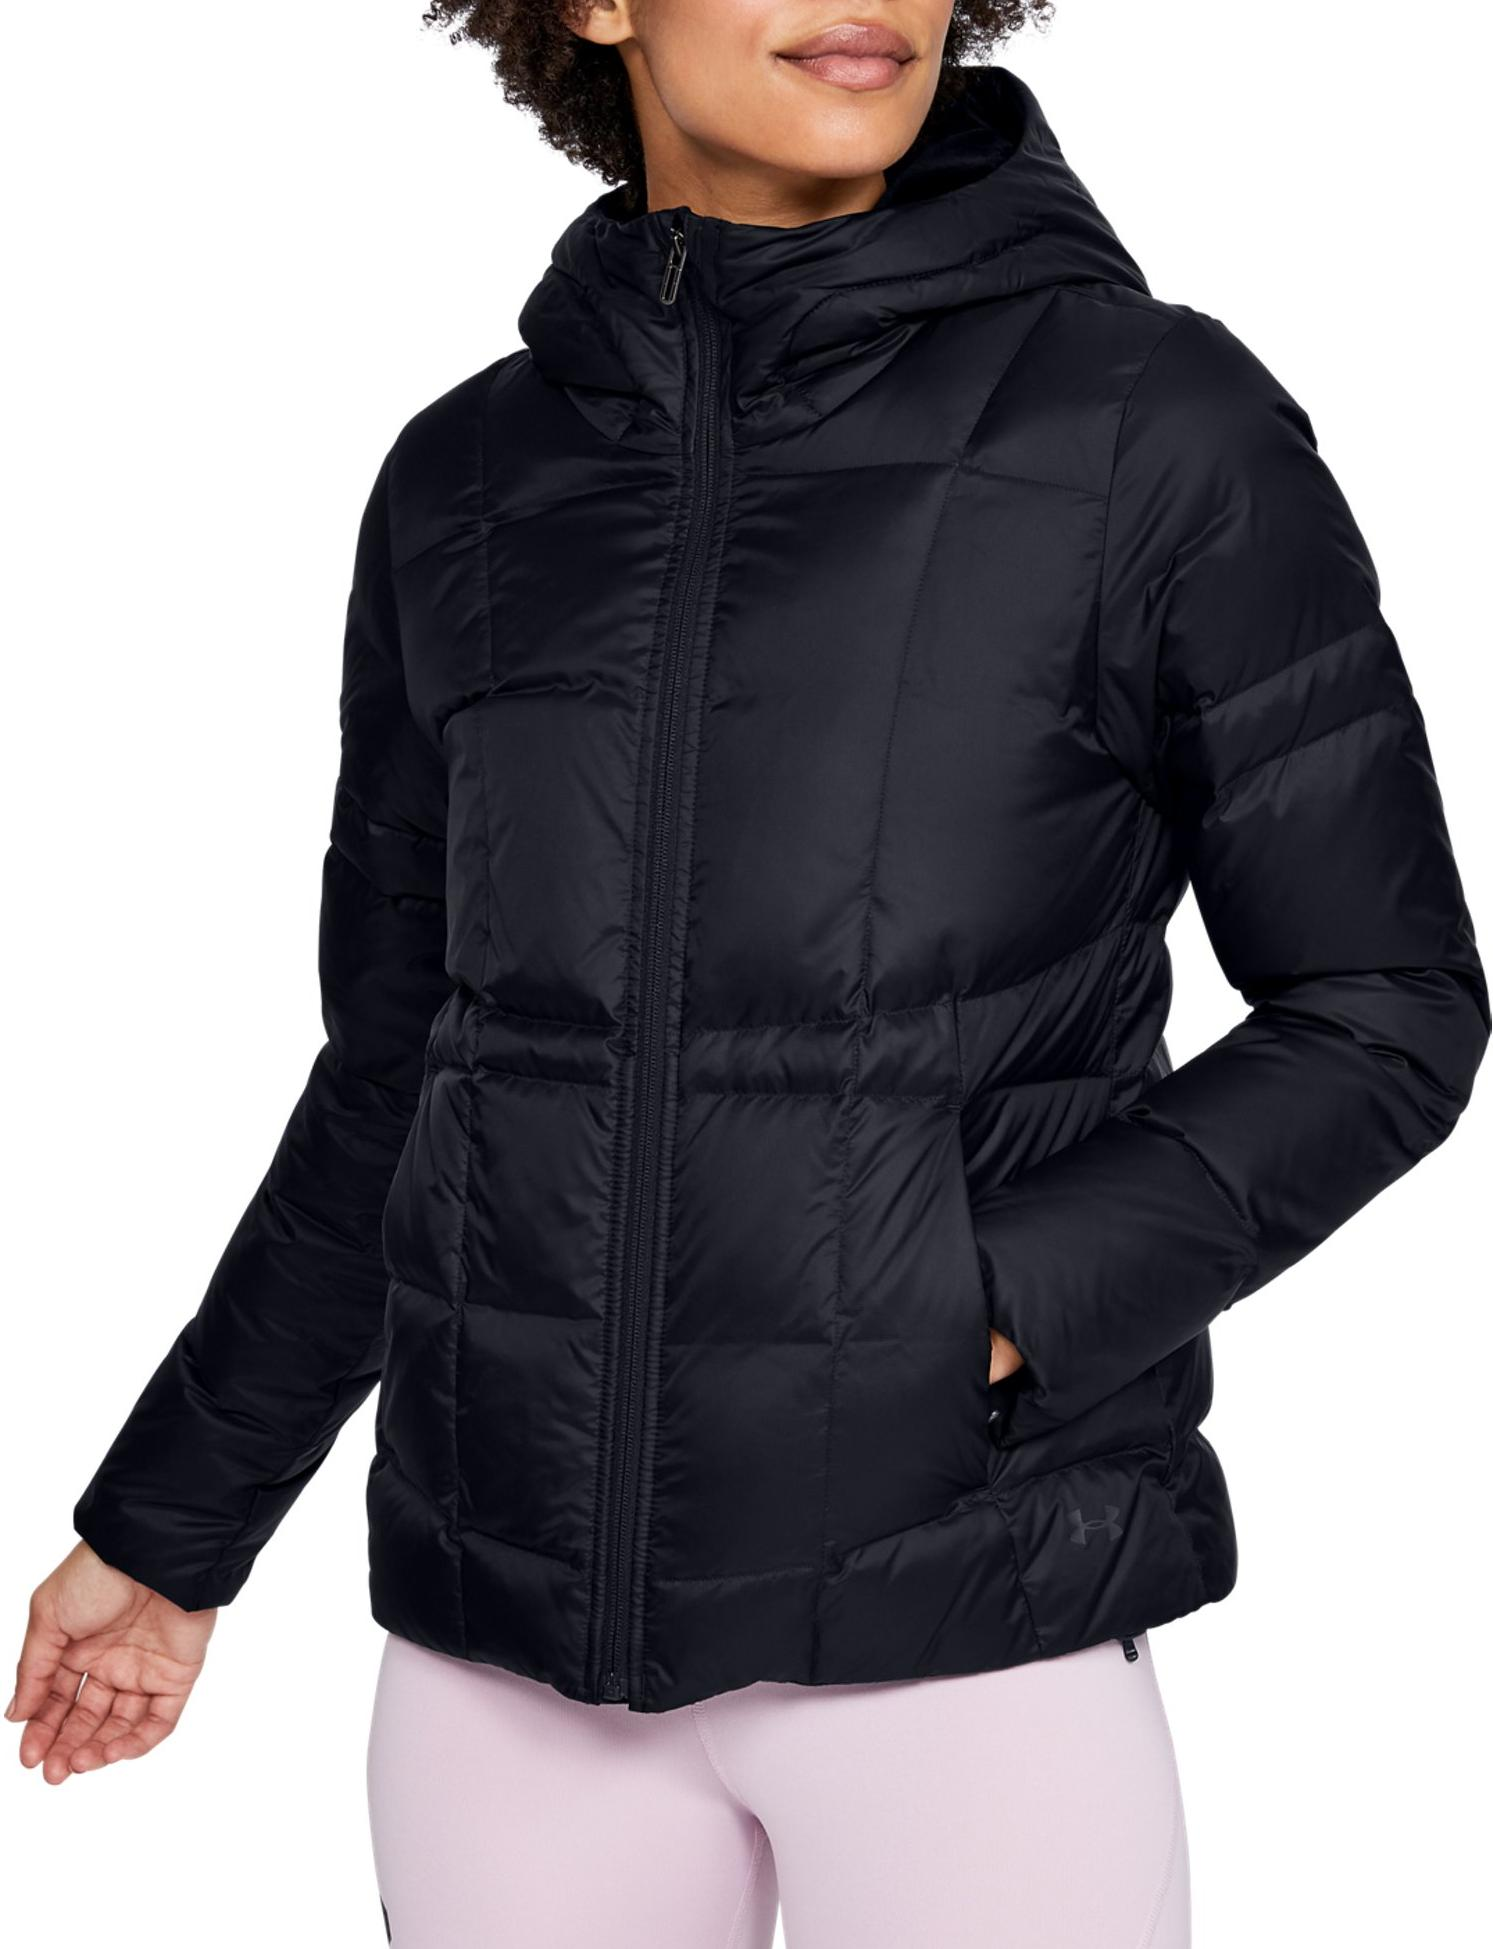 Bunda s kapucňou Under Armour UA Armour Down Hooded Jkt